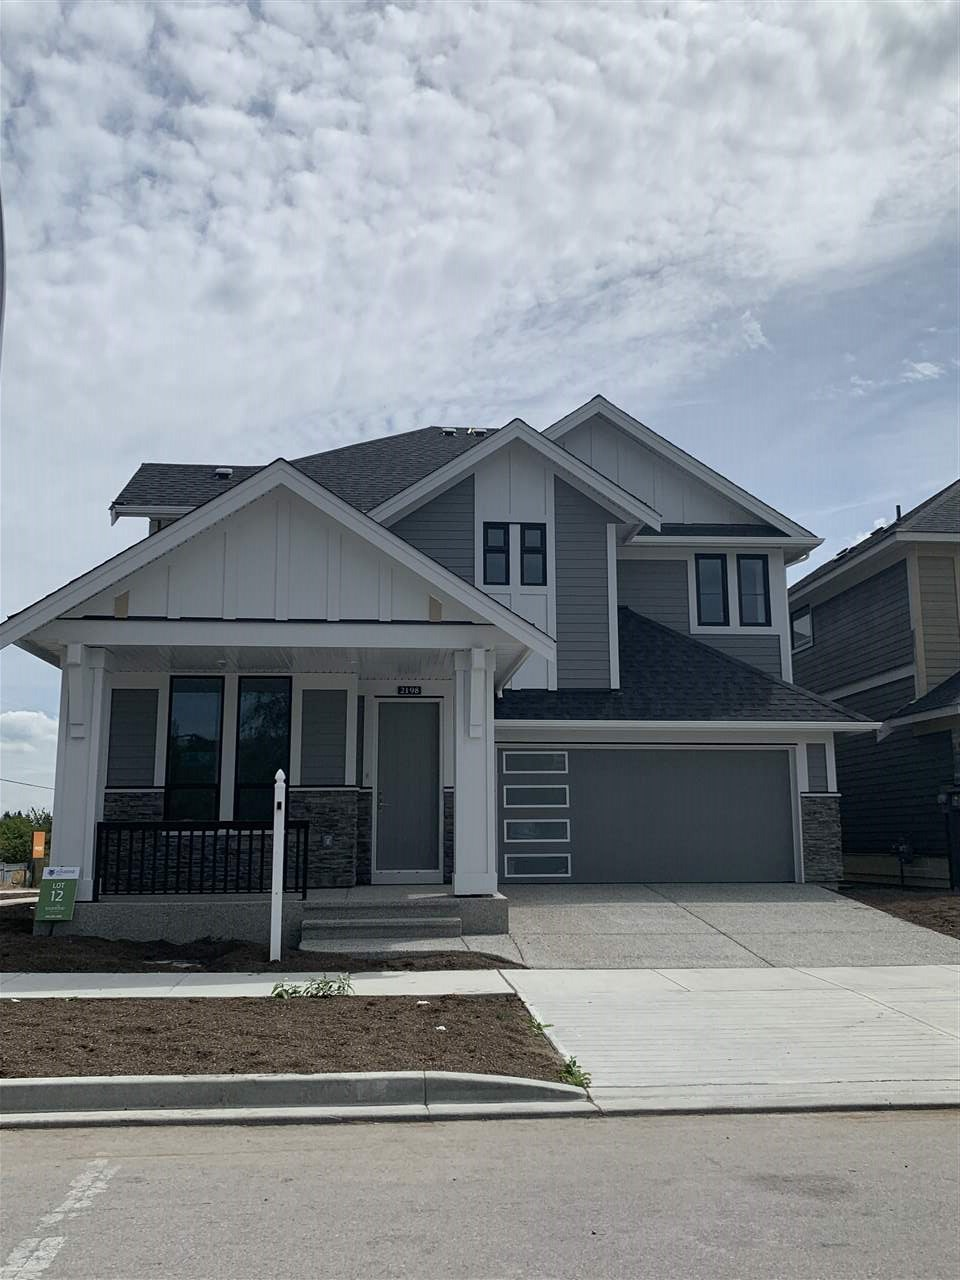 Removed: 2198 167 Street, Surrey, BC - Removed on 2019-11-14 09:36:13